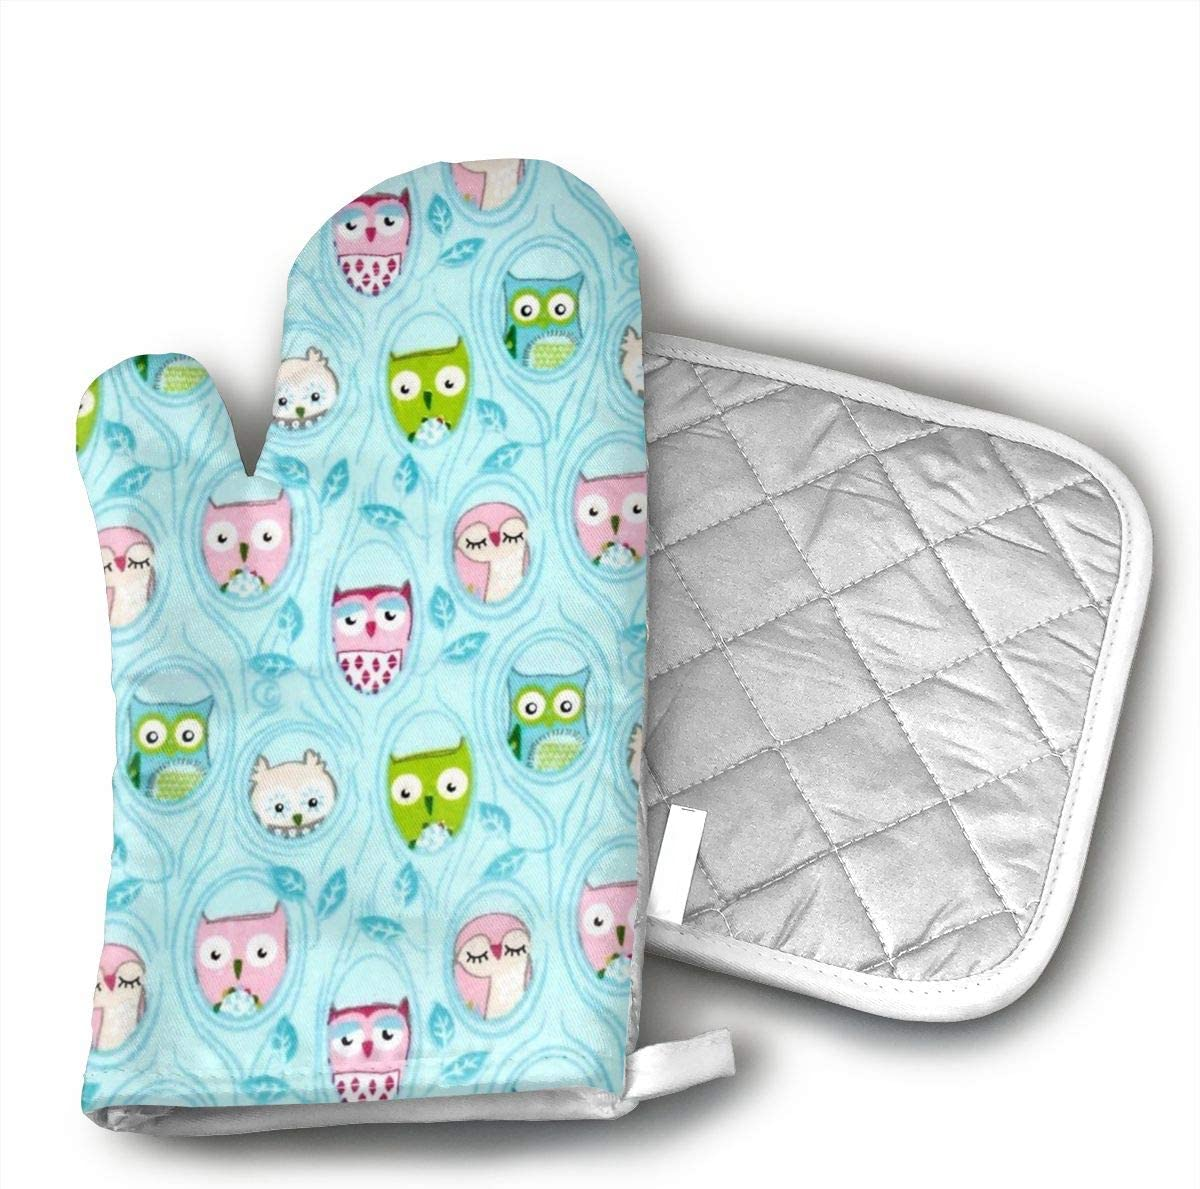 Owls in Trees Cotton Puppet Oven Mitts and Pot Holder Kitchen Set with Neoprene Non-Slip Grip, Heat Resistant, Oven Gloves and Pot Holders Set for BBQ Cooking Baking, Grilling,Machine Washable.